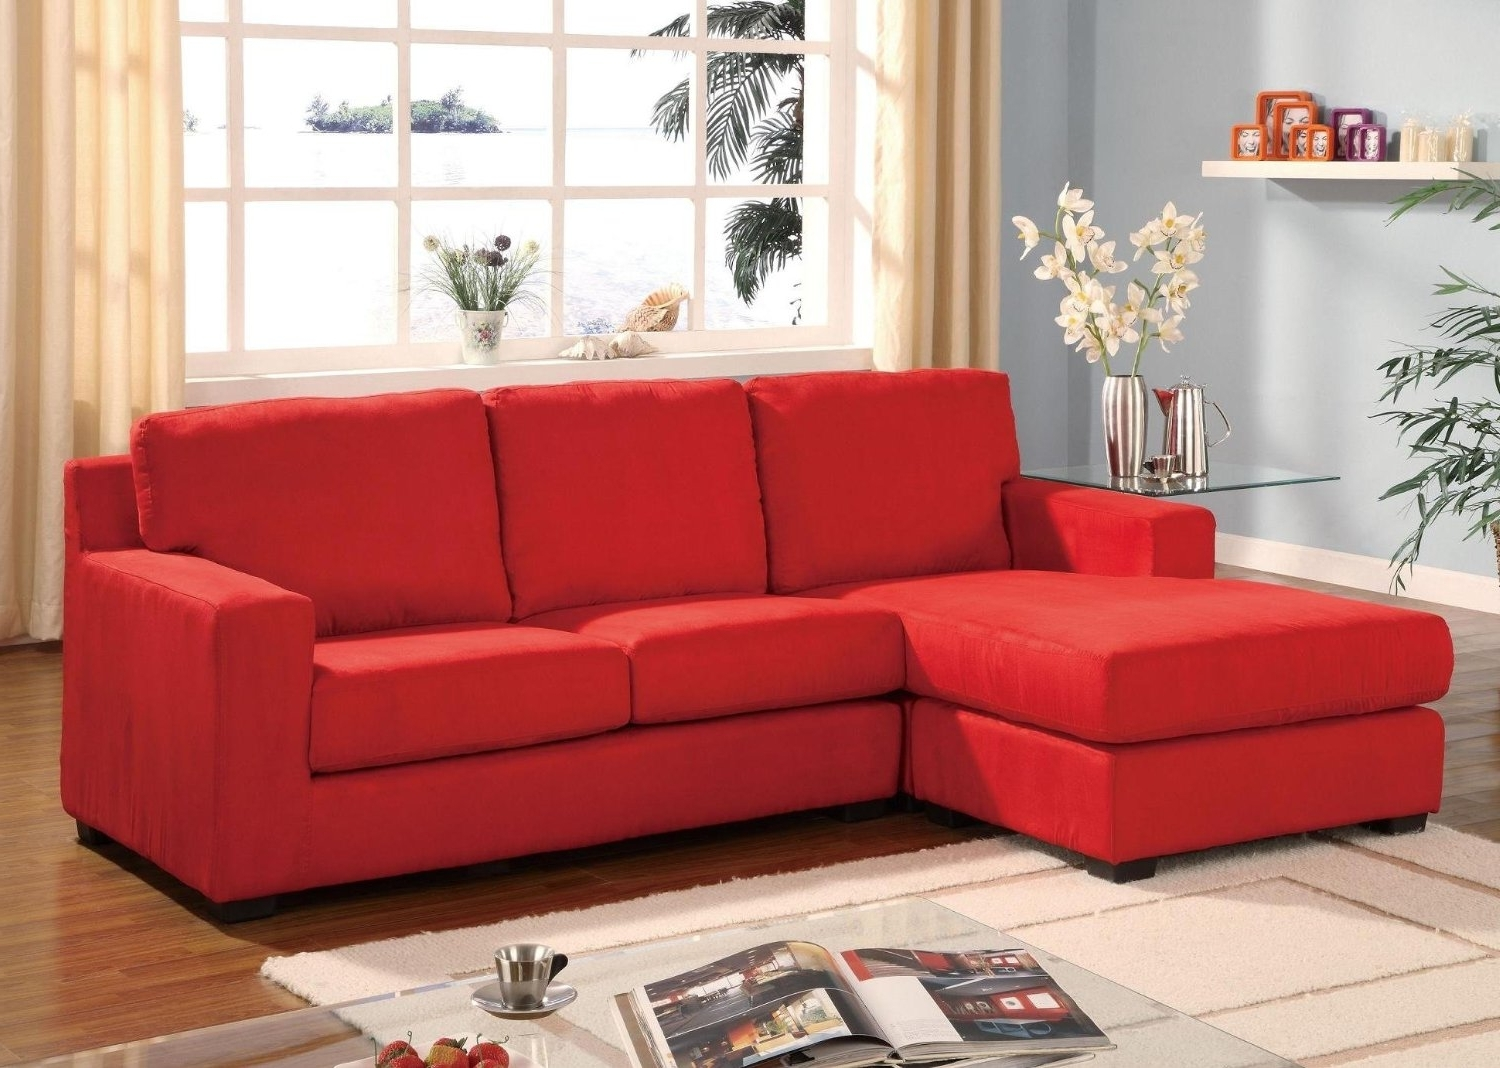 Popular Red Leather Sectionals With Chaise Inside Italian Brown Leather Sectional With Chaise With Sectional Sofas (View 6 of 15)